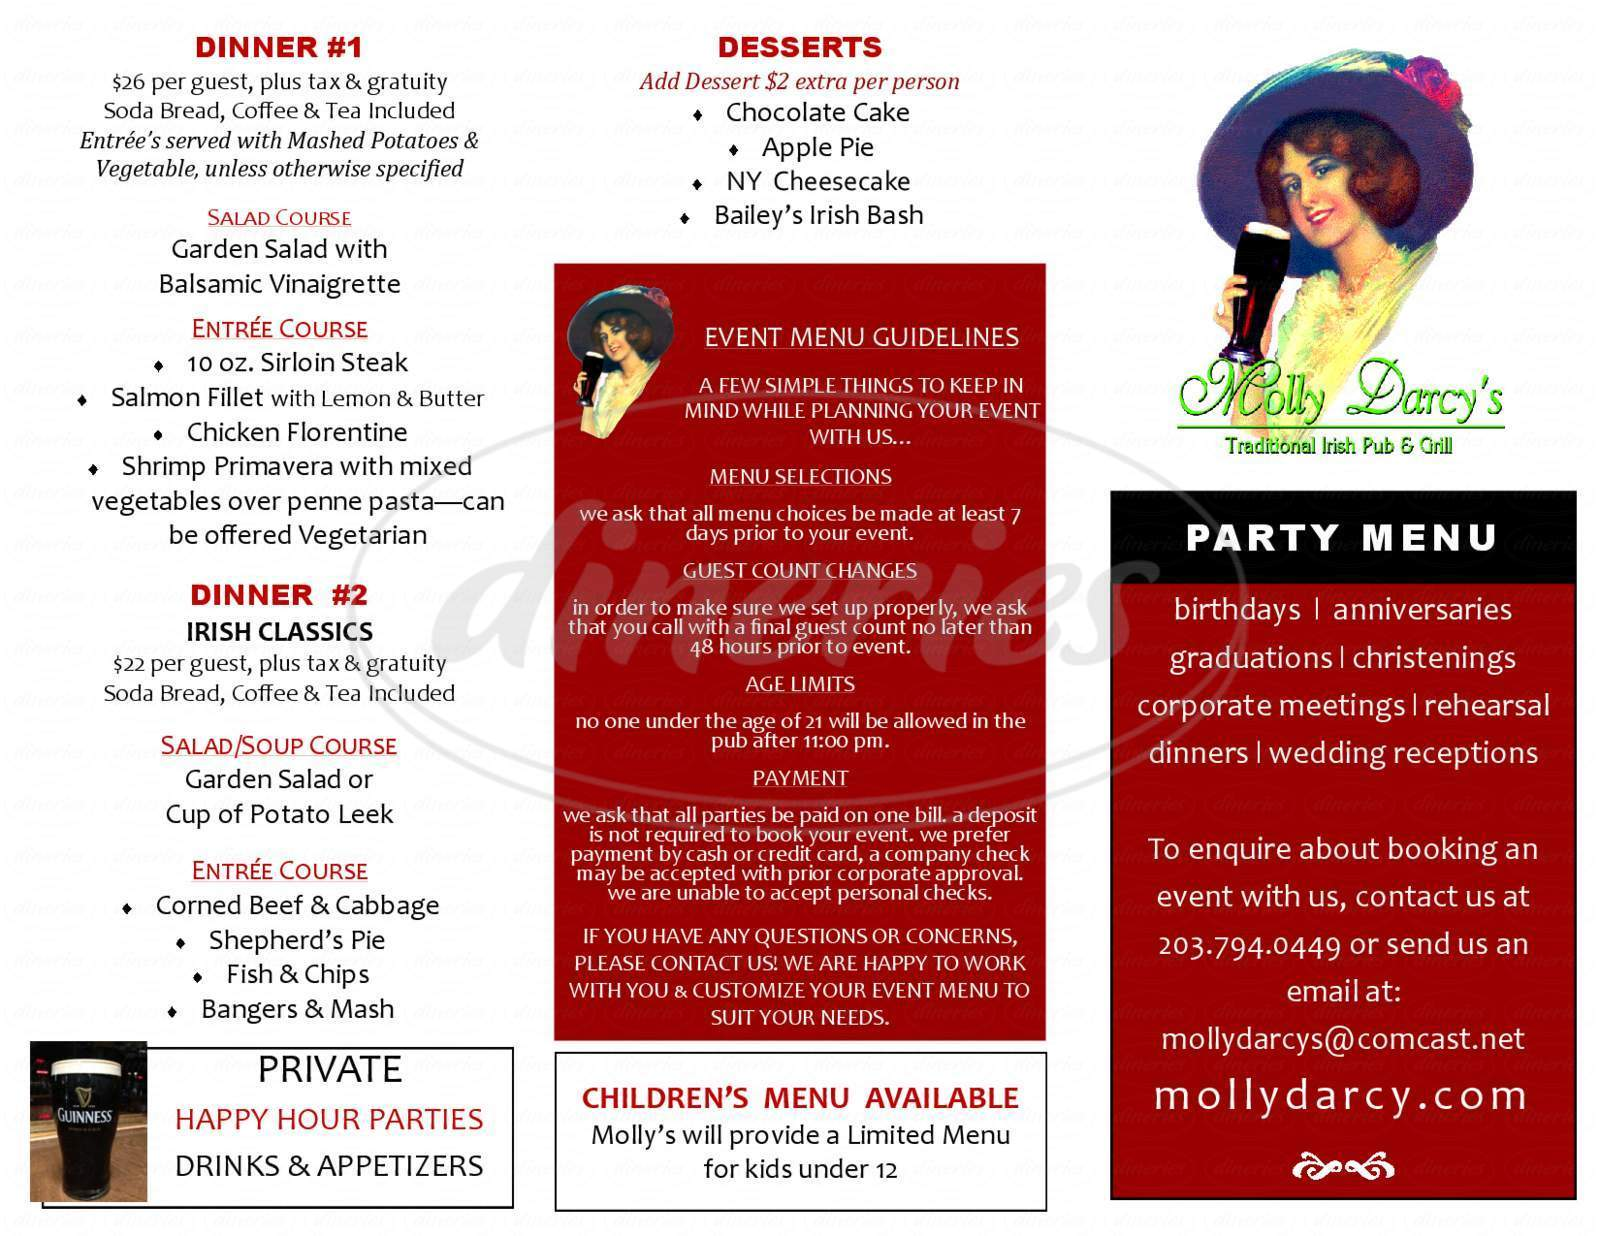 menu for Molly Darcy's Pub